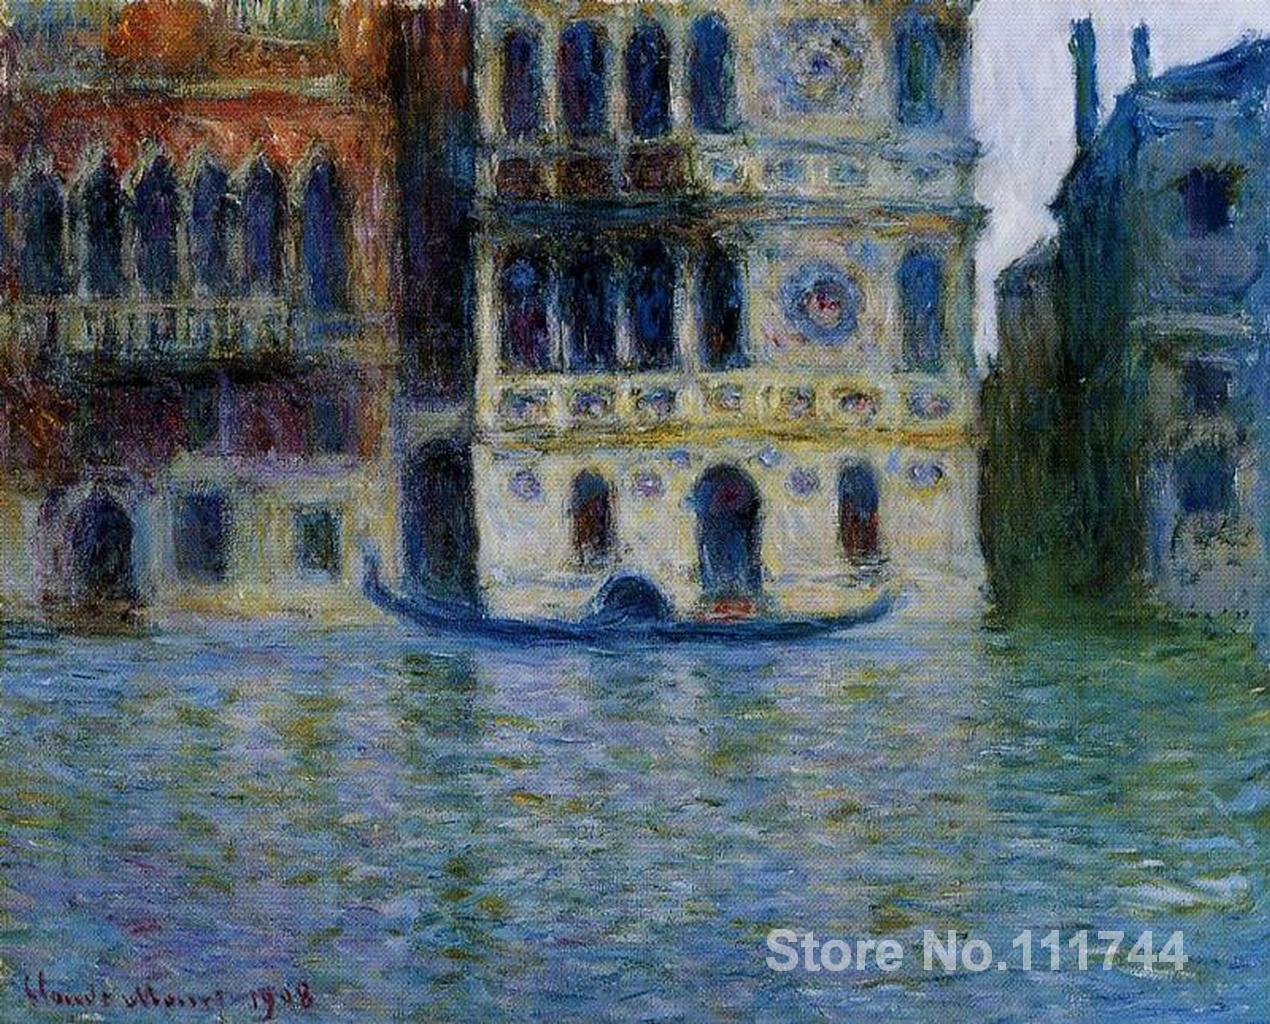 Copy oil paintings famous artist Palazzo Dario Claude Monet artwork handmade for home wall decorationCopy oil paintings famous artist Palazzo Dario Claude Monet artwork handmade for home wall decoration